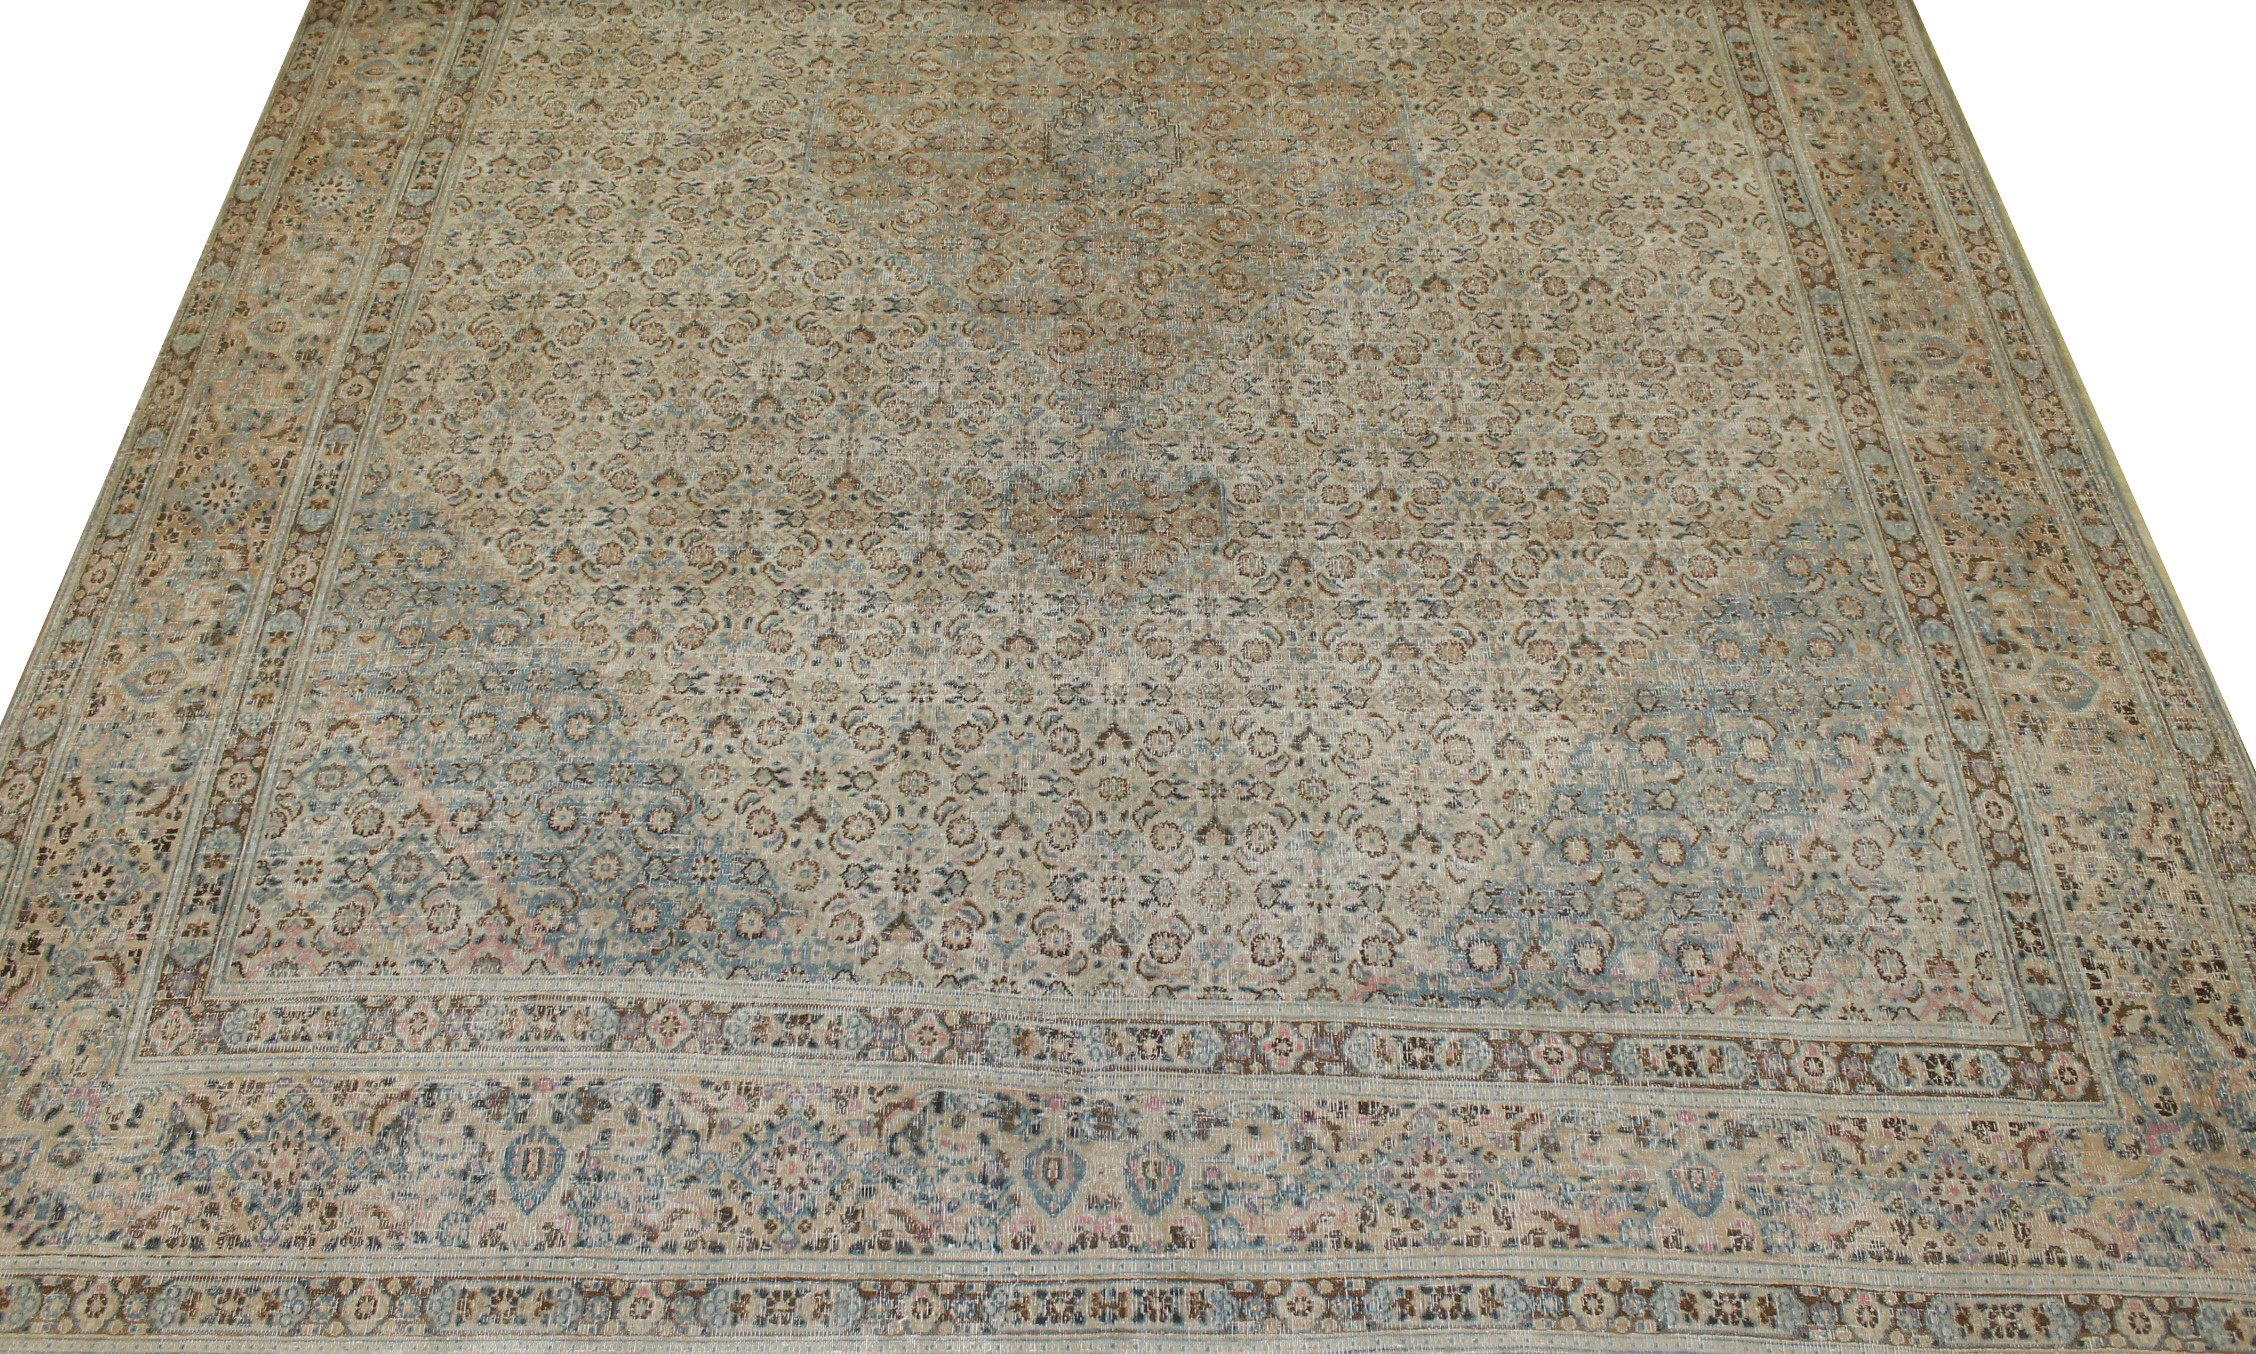 10x14 Traditional Hand Knotted Wool Area Rug - MR021650